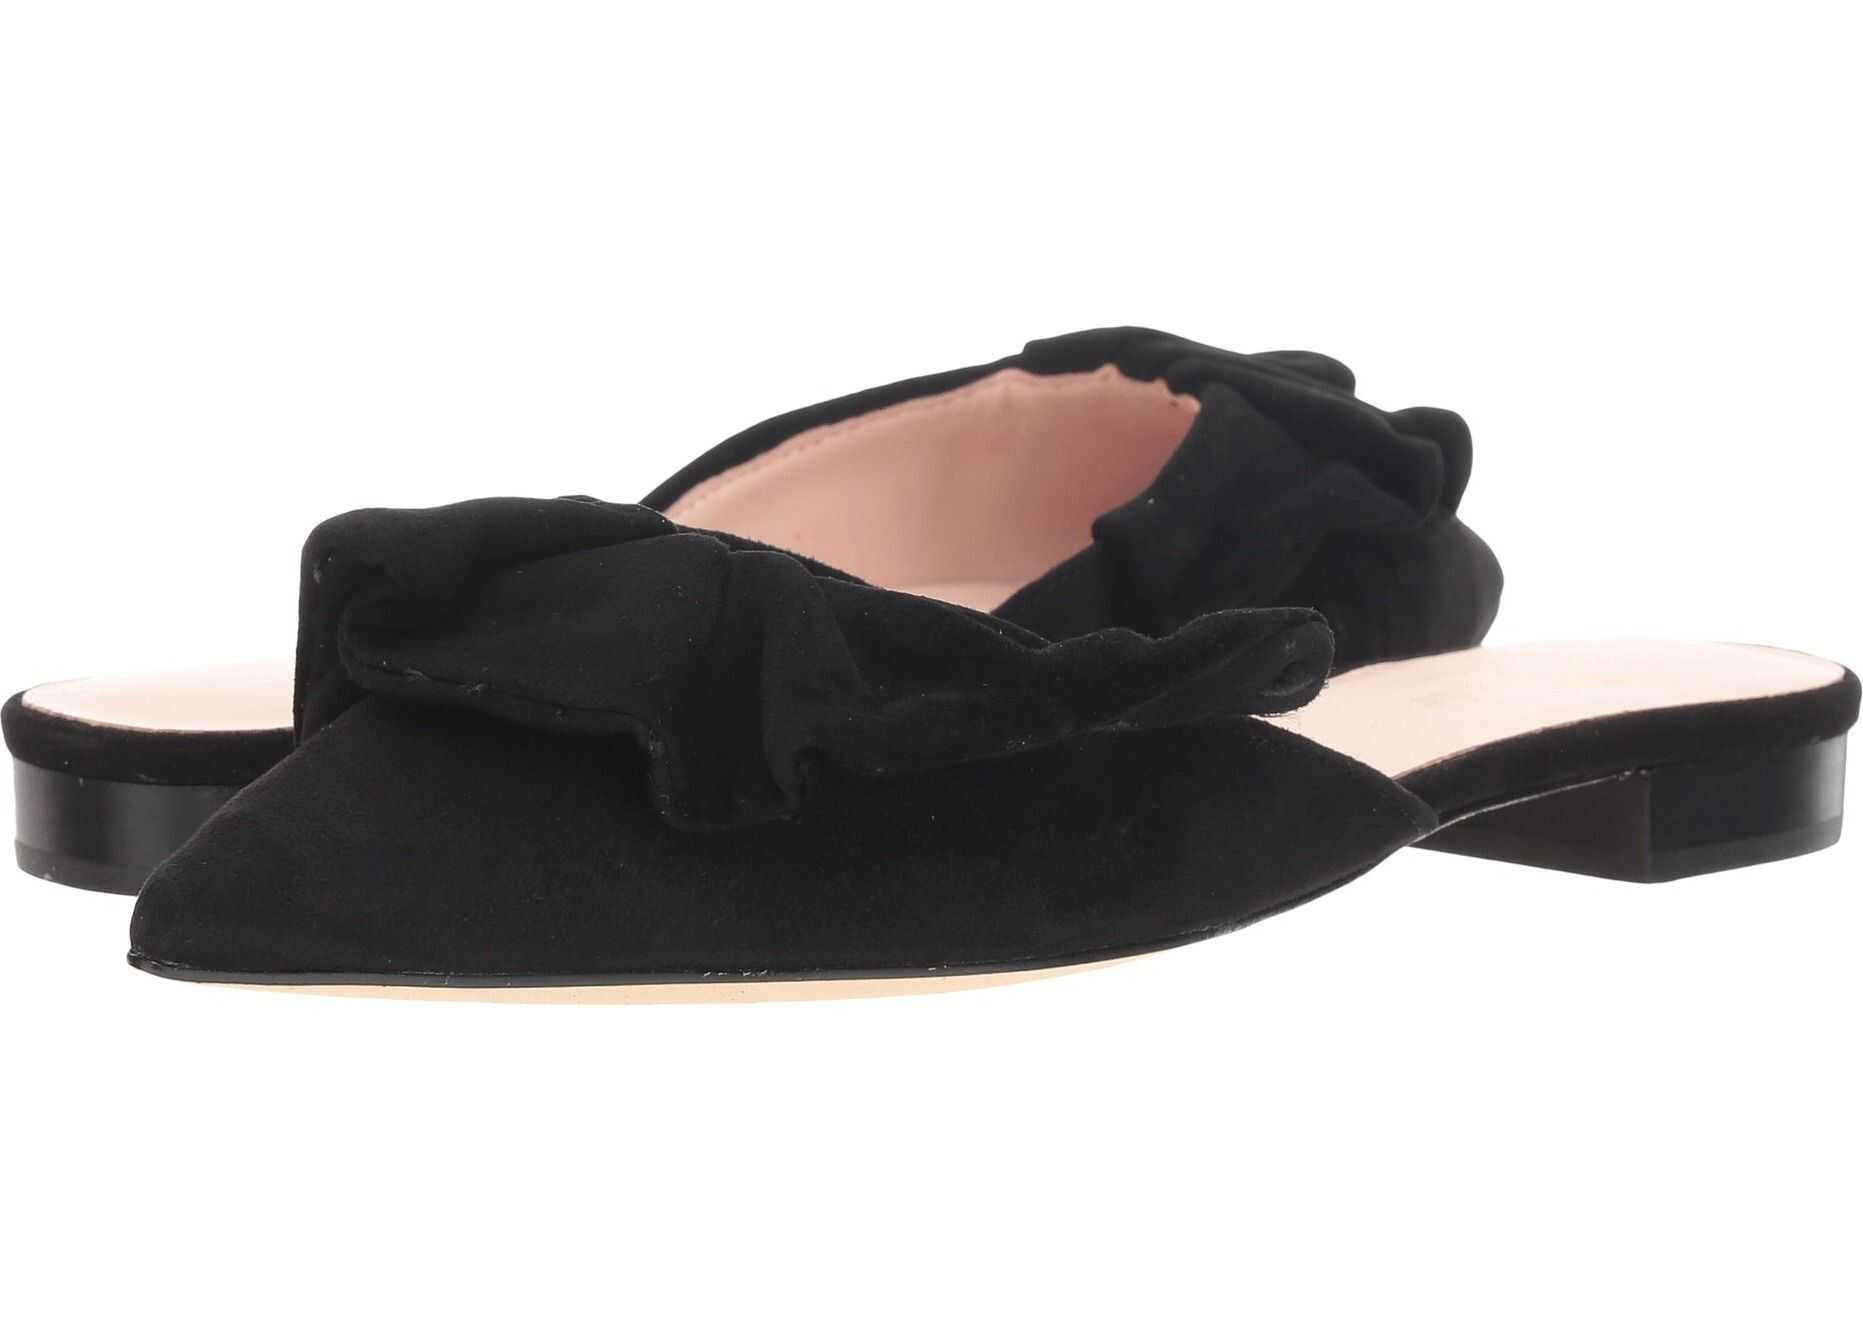 Kate Spade New York Fayrn Mule Black Suede